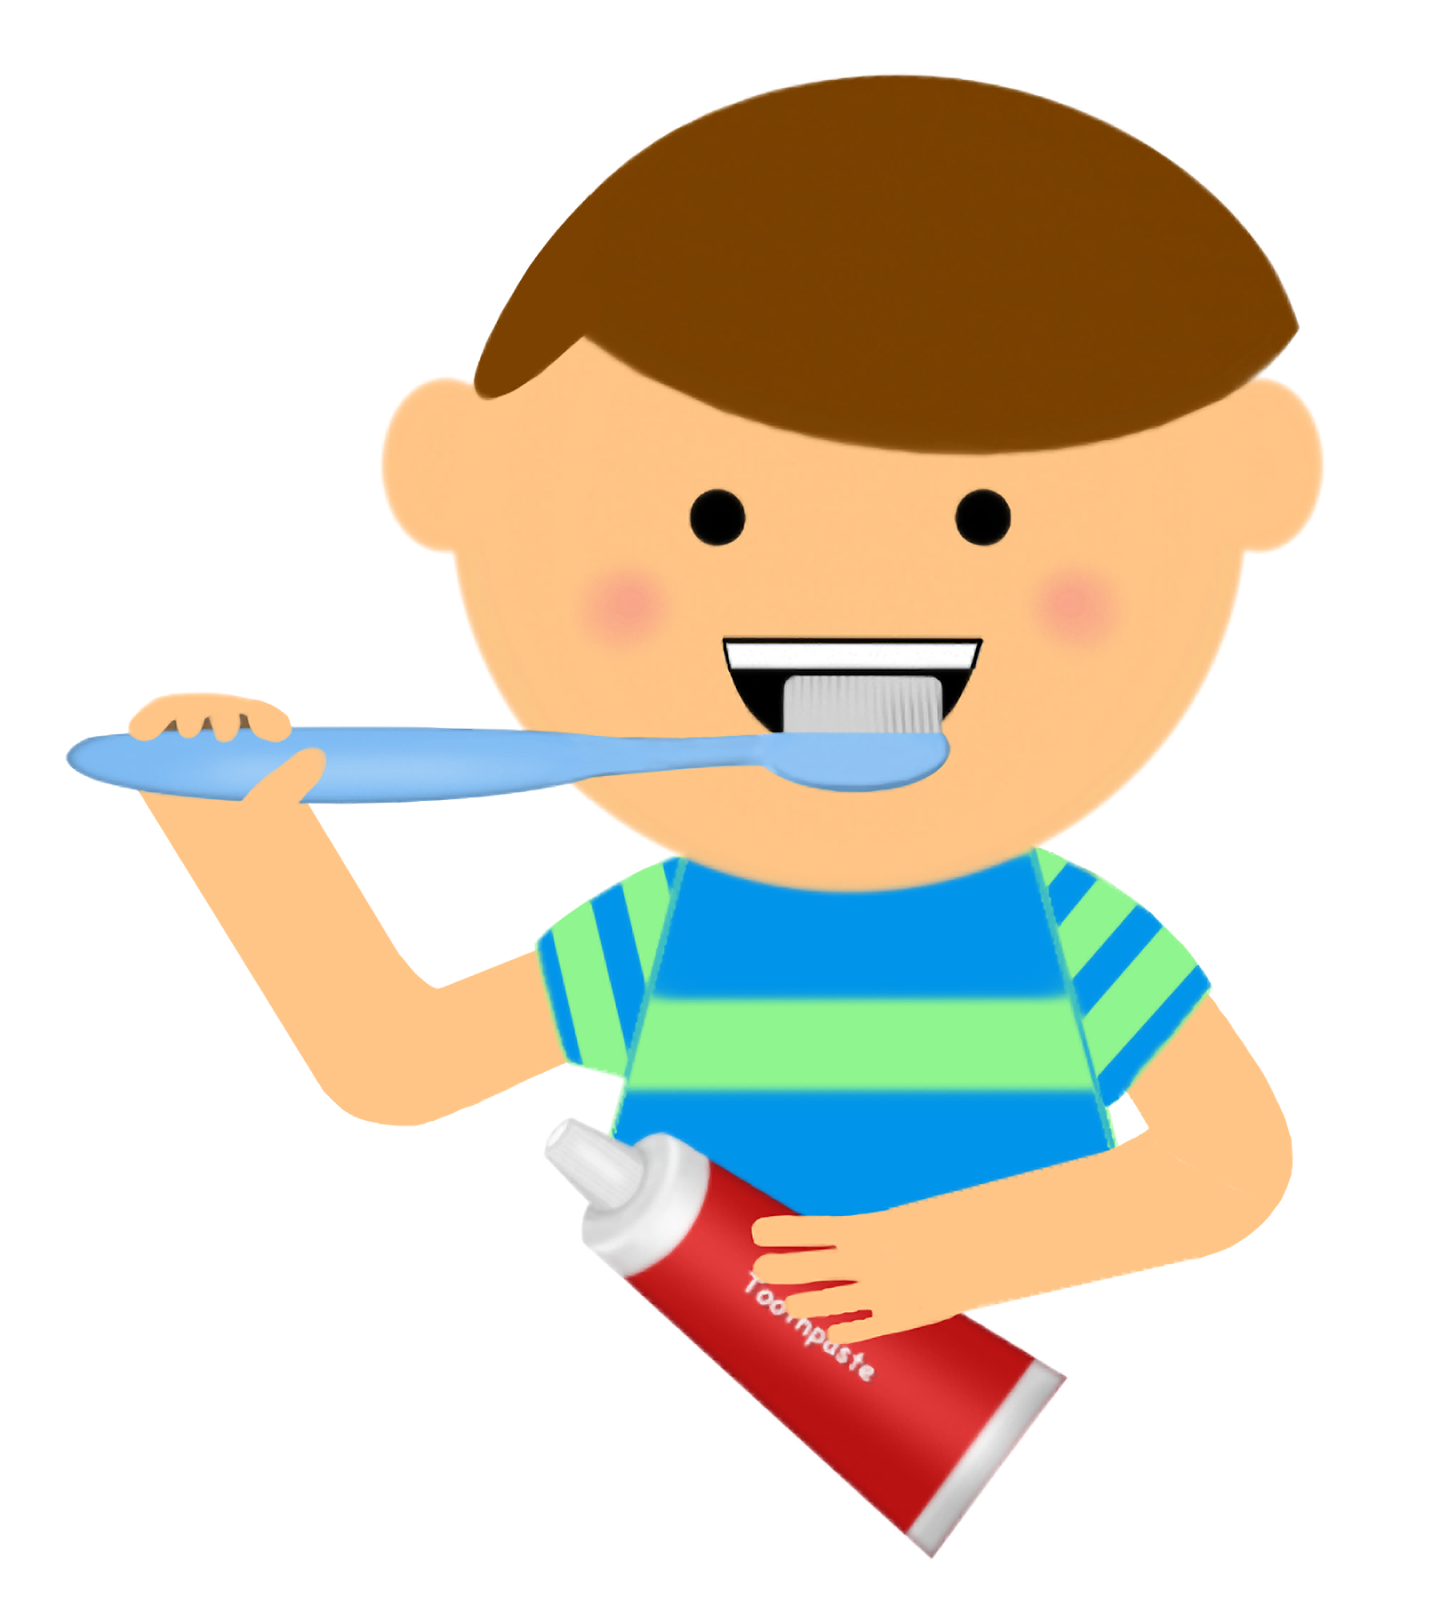 Comb clipart boy washing face, Comb boy washing face.